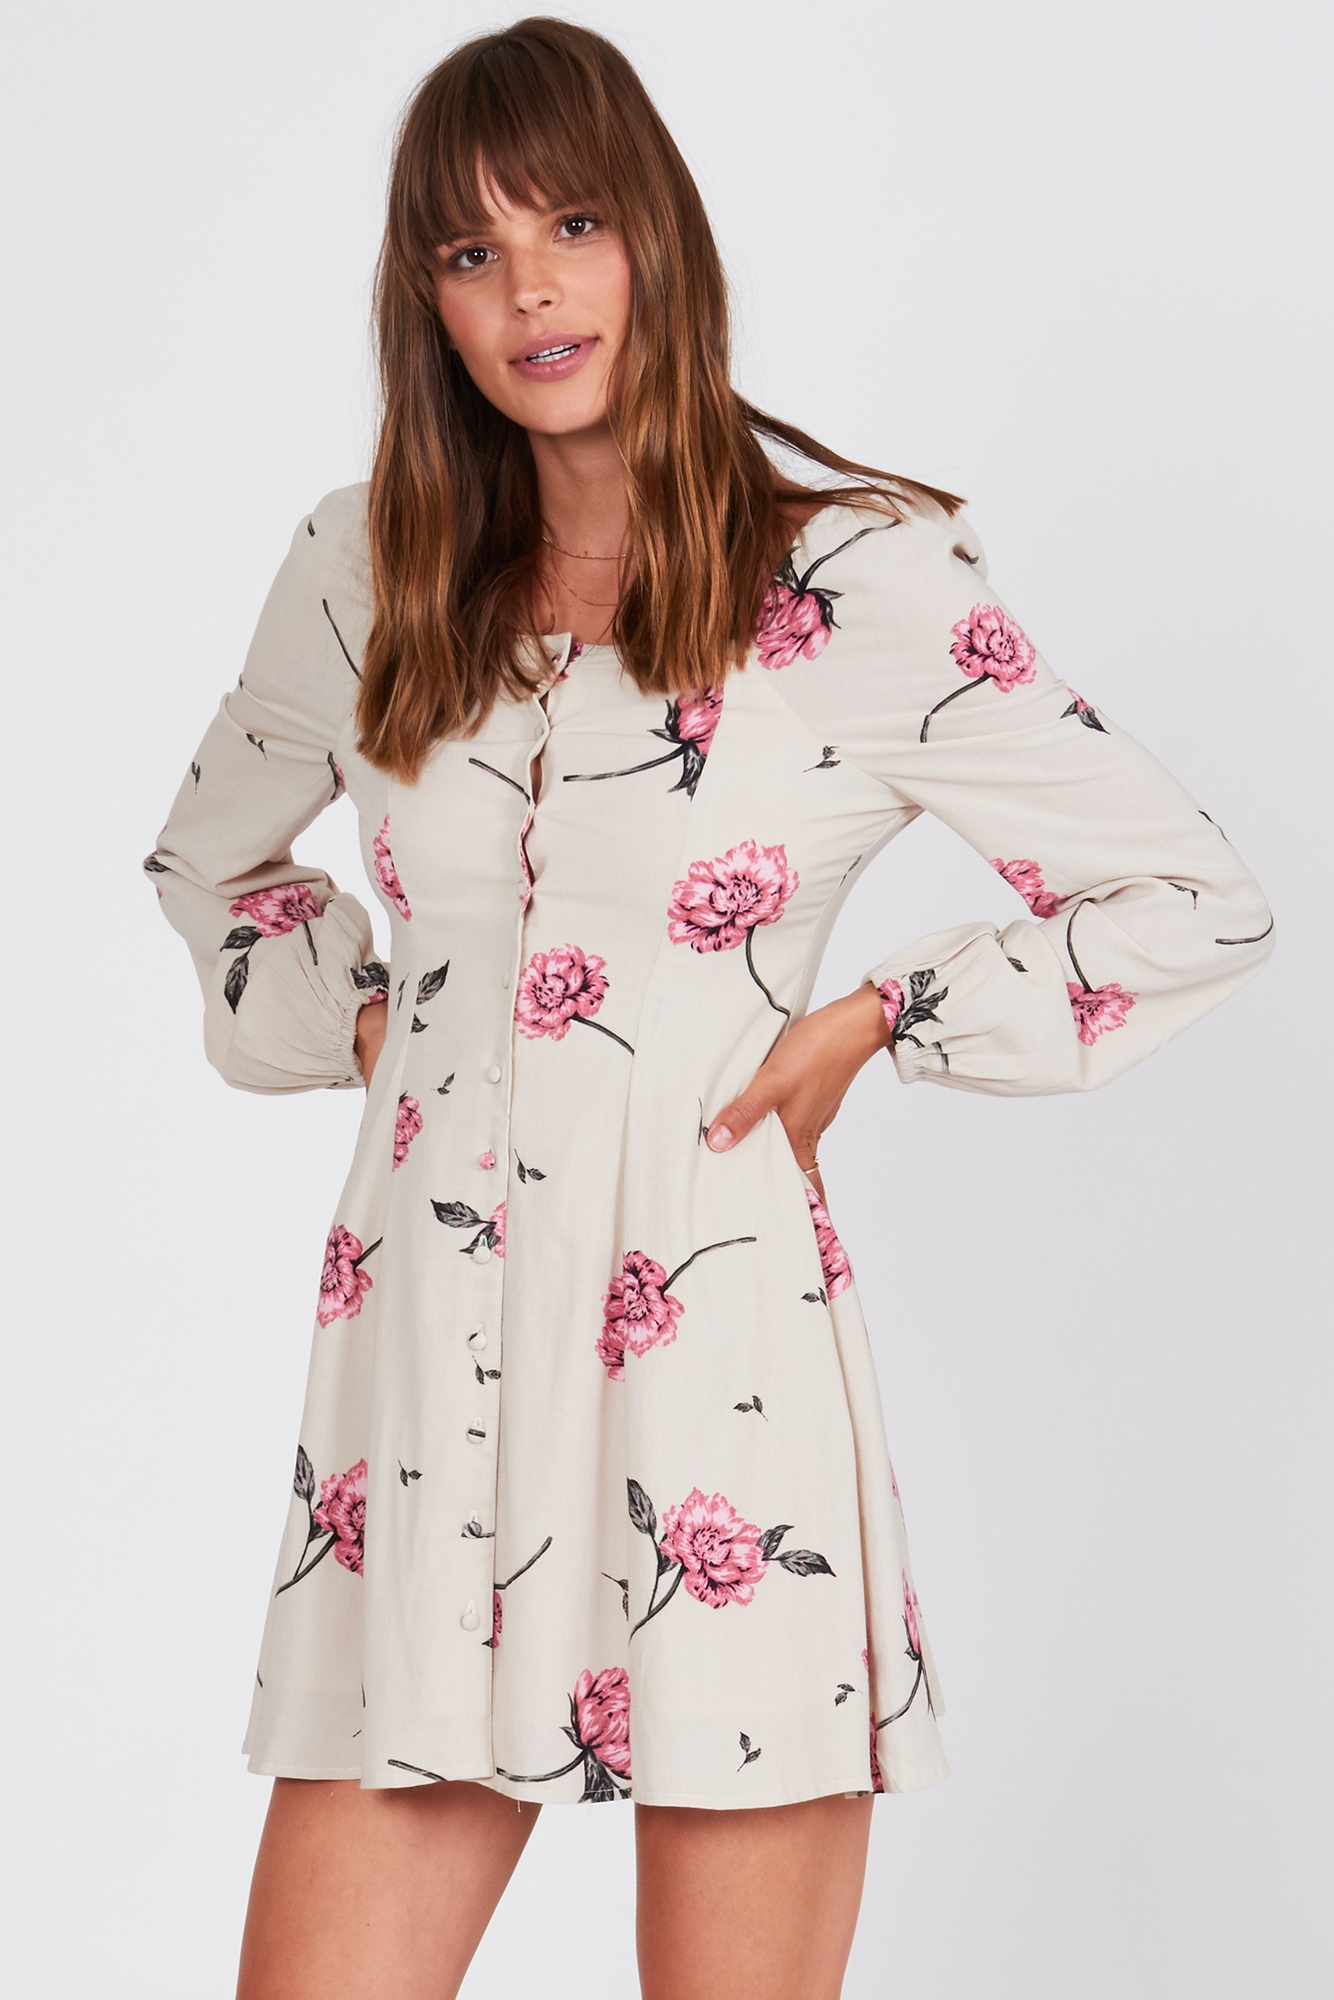 Easy On The Eyes Dress